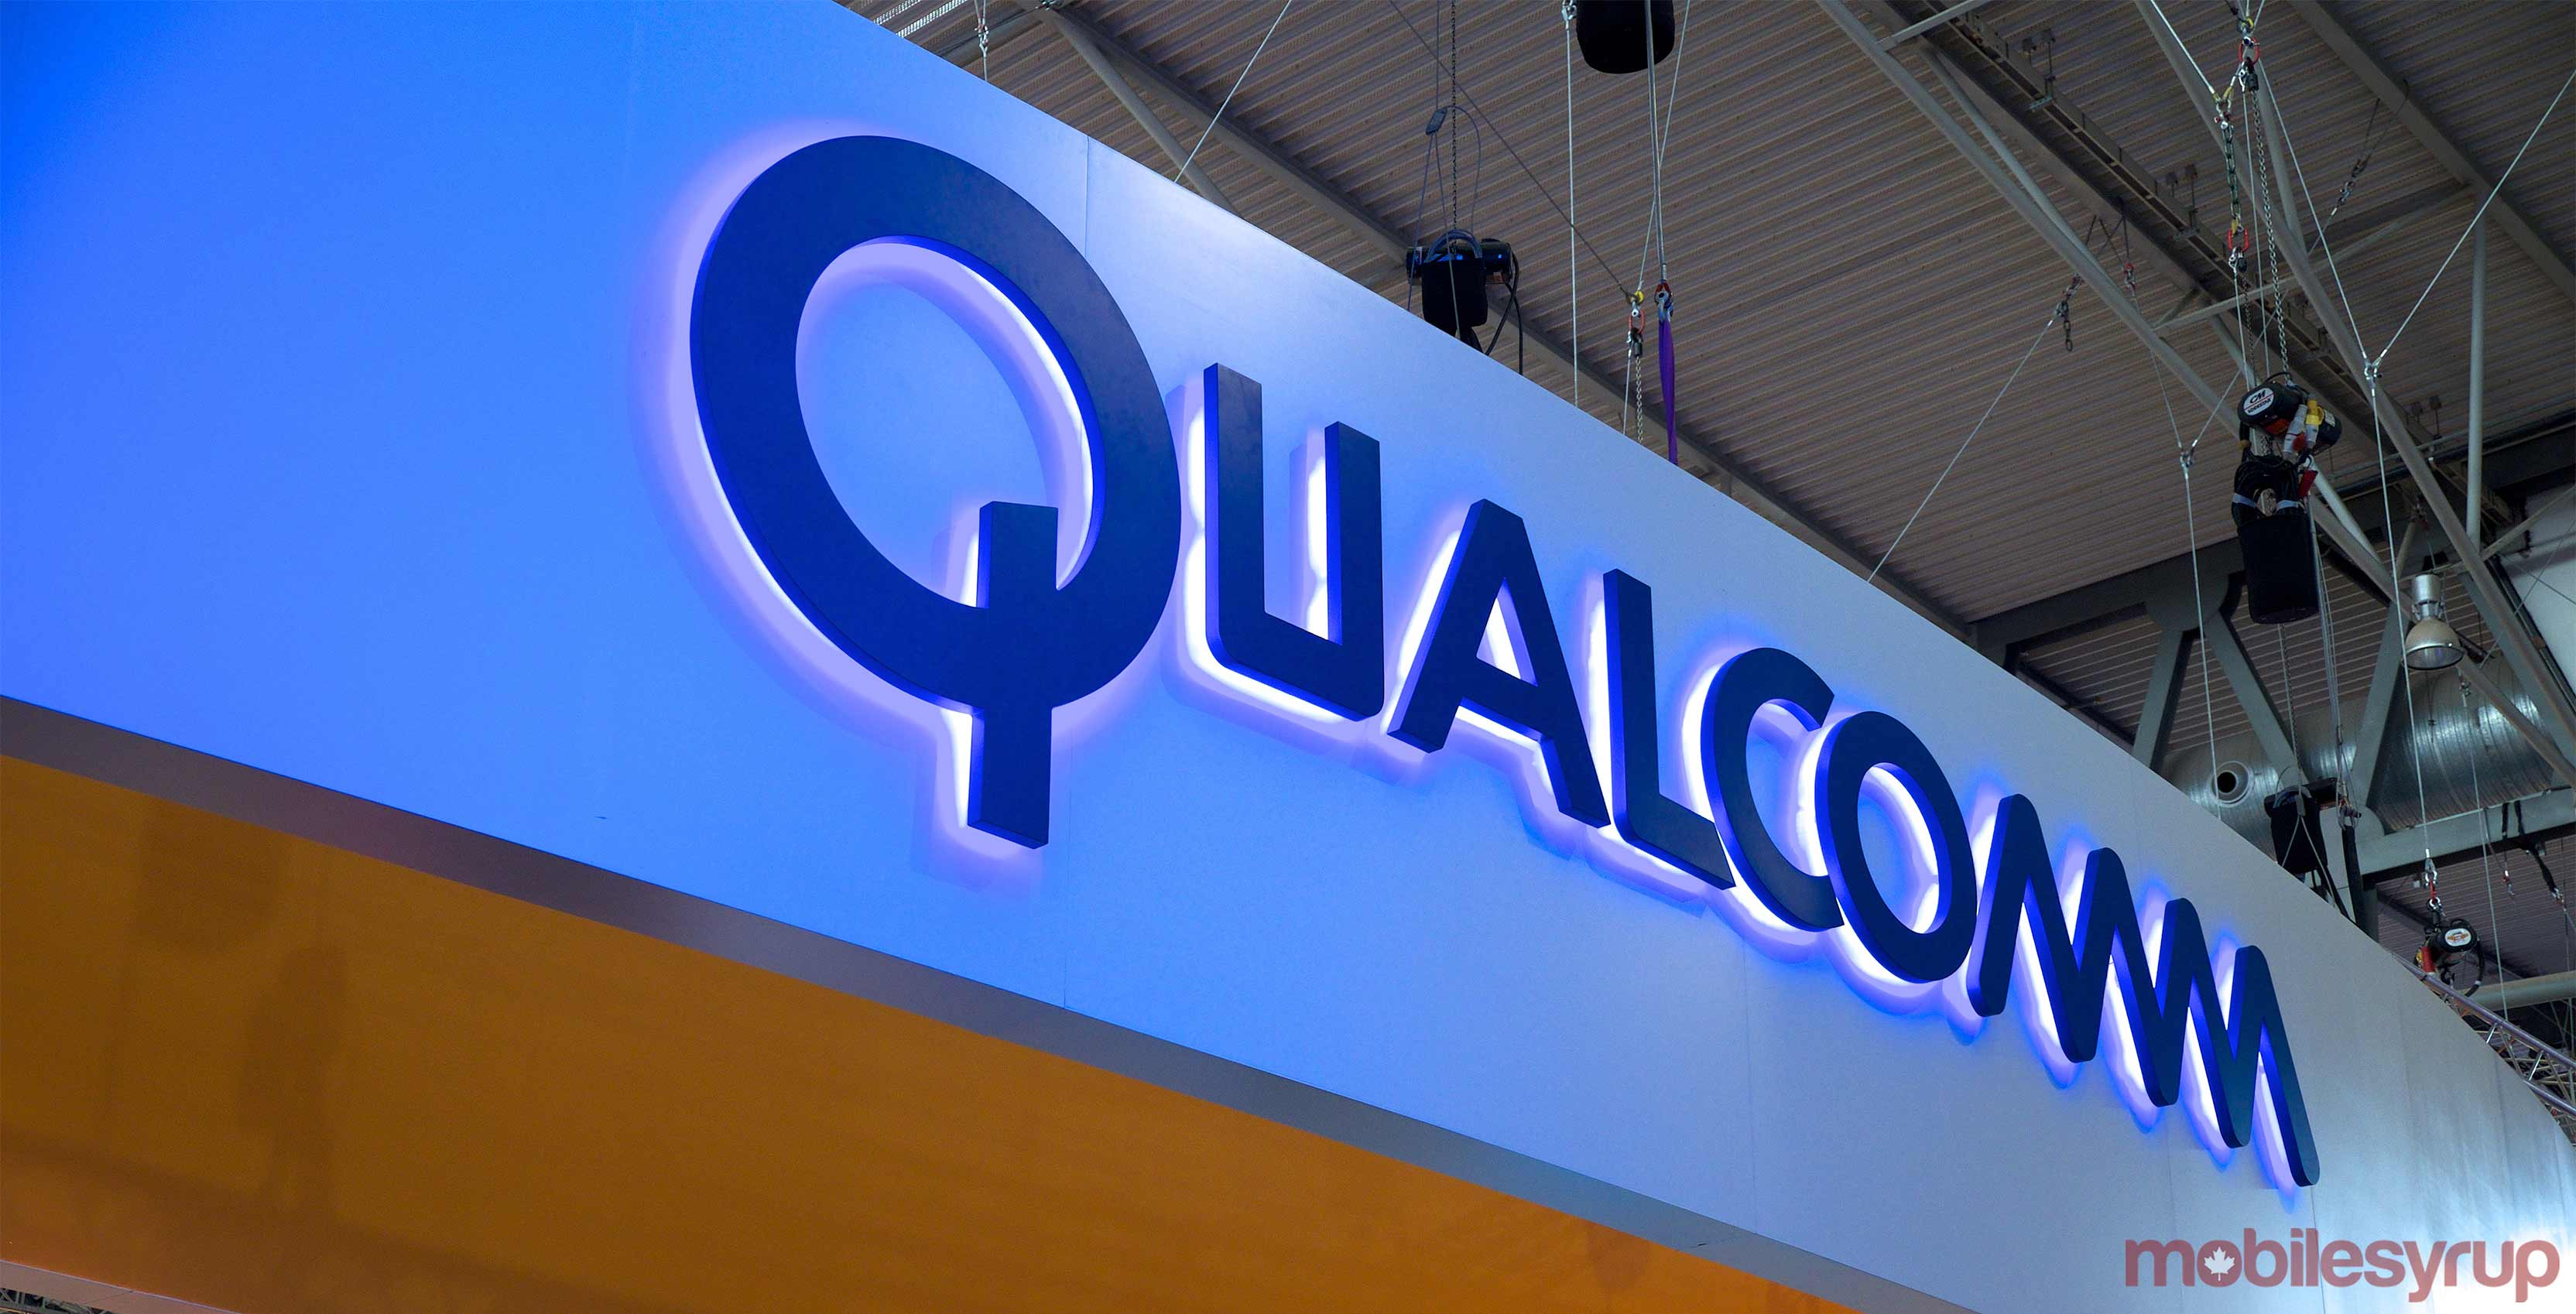 An image showcasing the Qualcomm logo